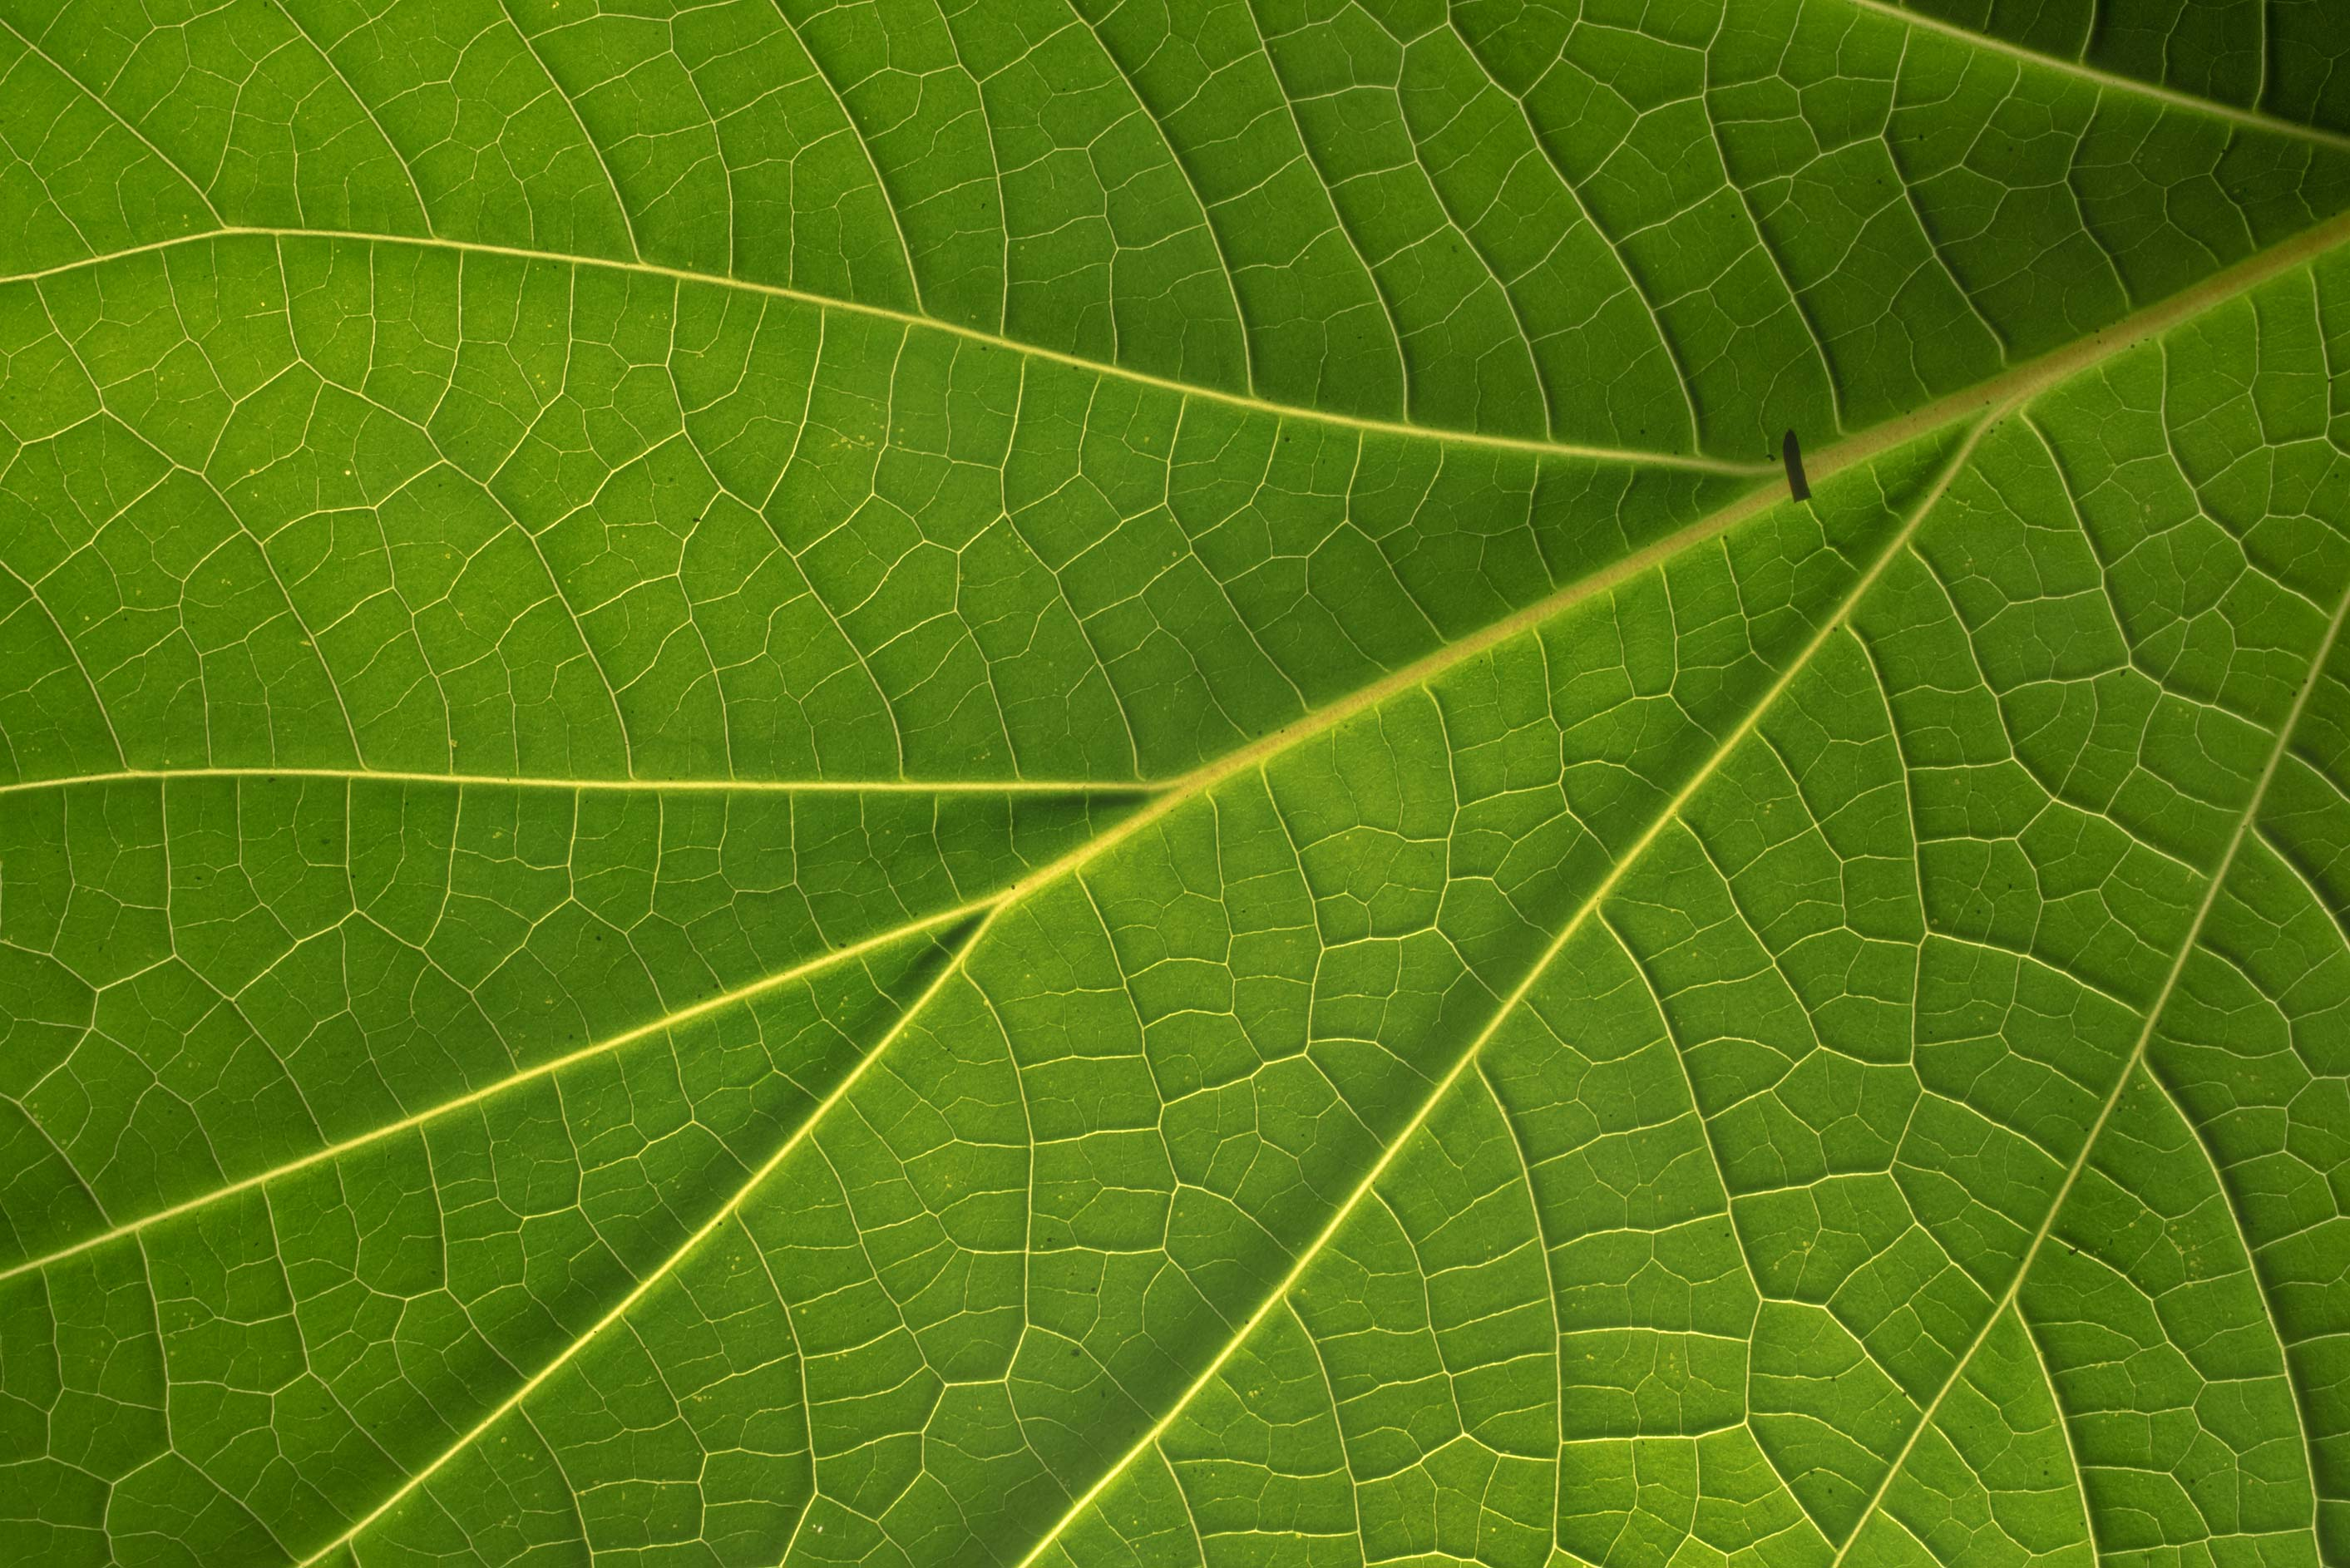 Venation of a broad leaf of Catalpa in Antique Rose Emporium. Independence, Texas